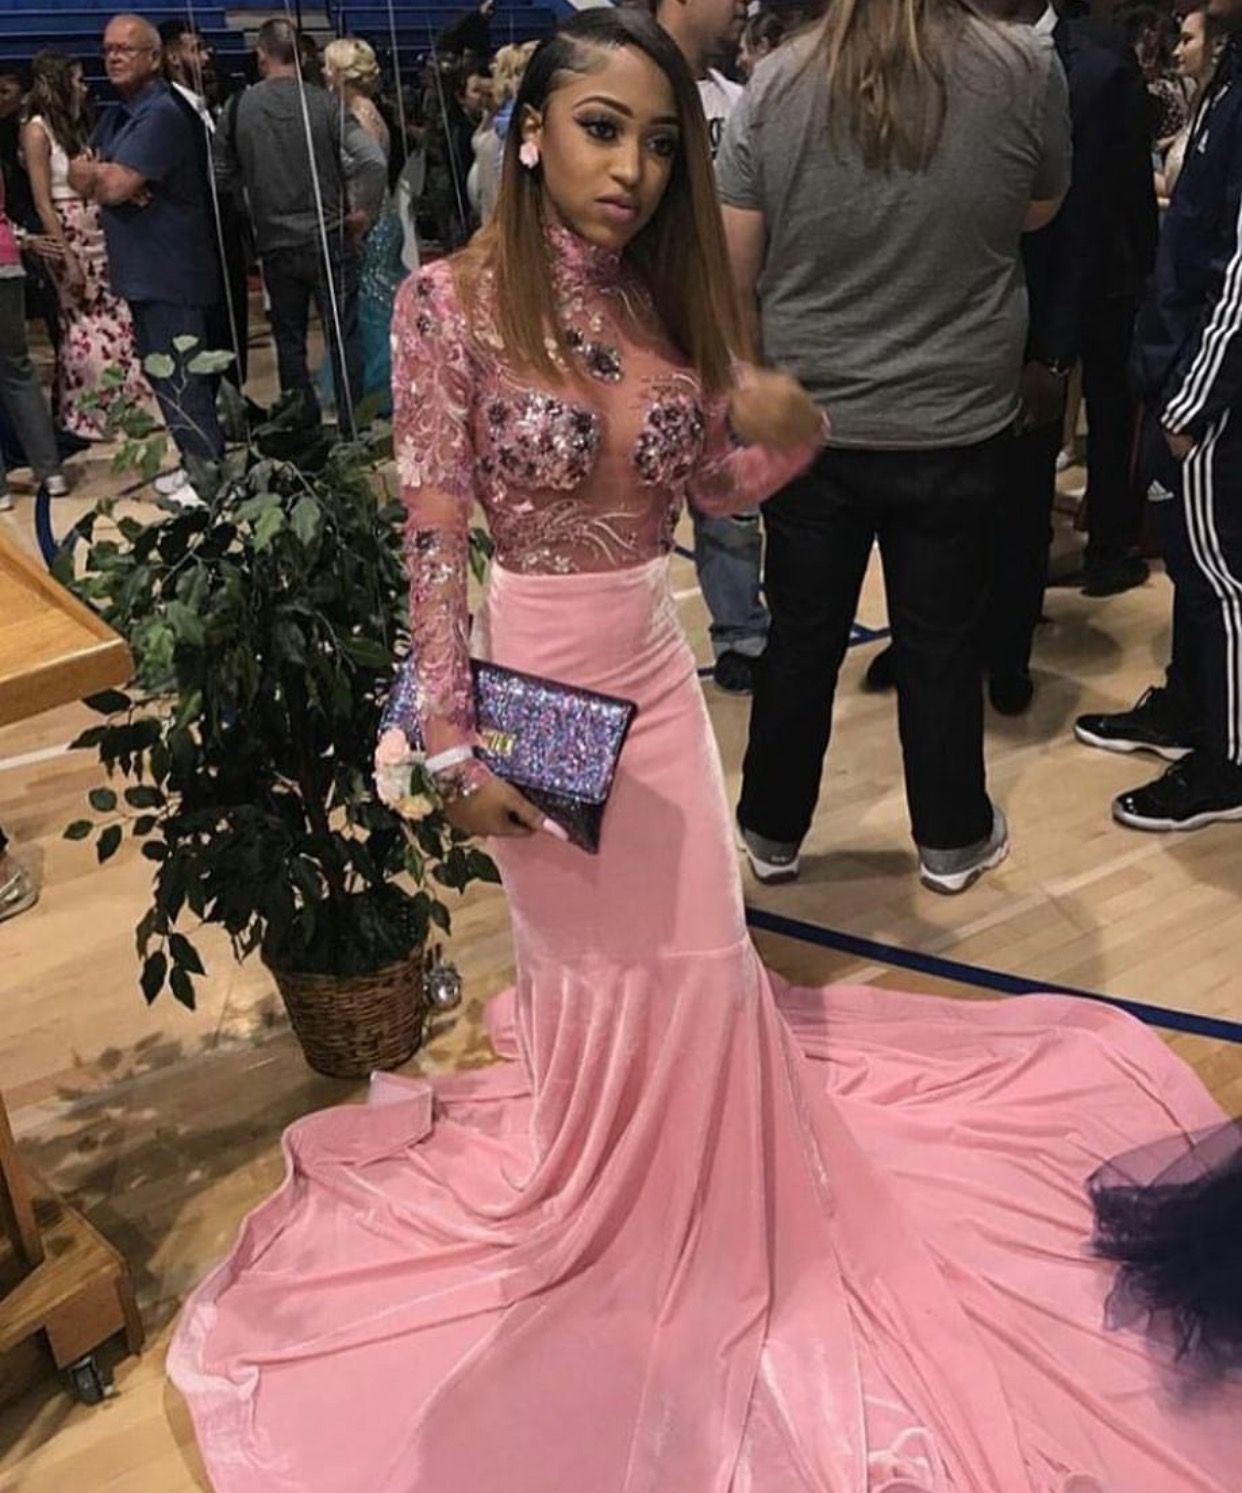 This is the most prettiest pink prom dress i ever saw she really